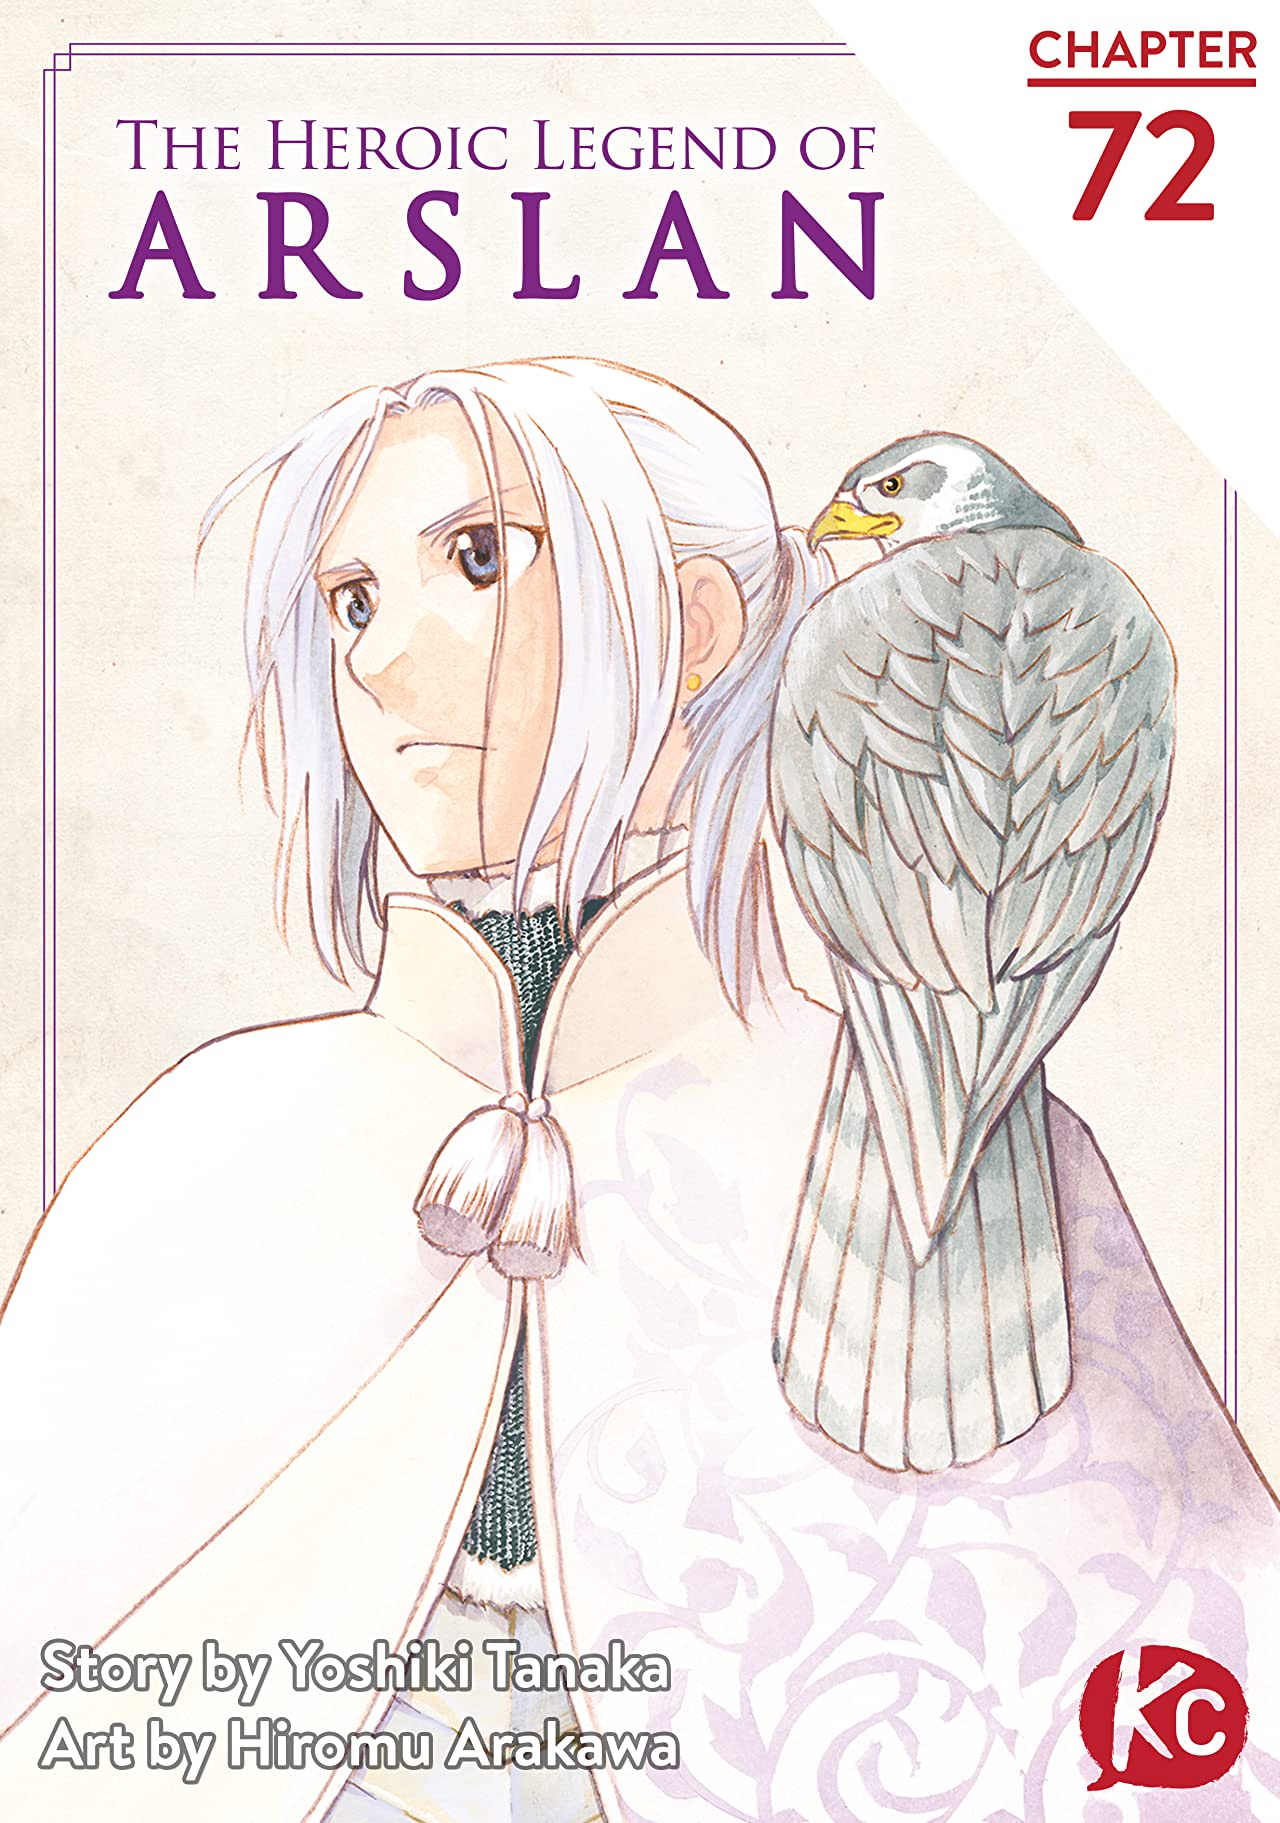 The Heroic Legend of Arslan #72